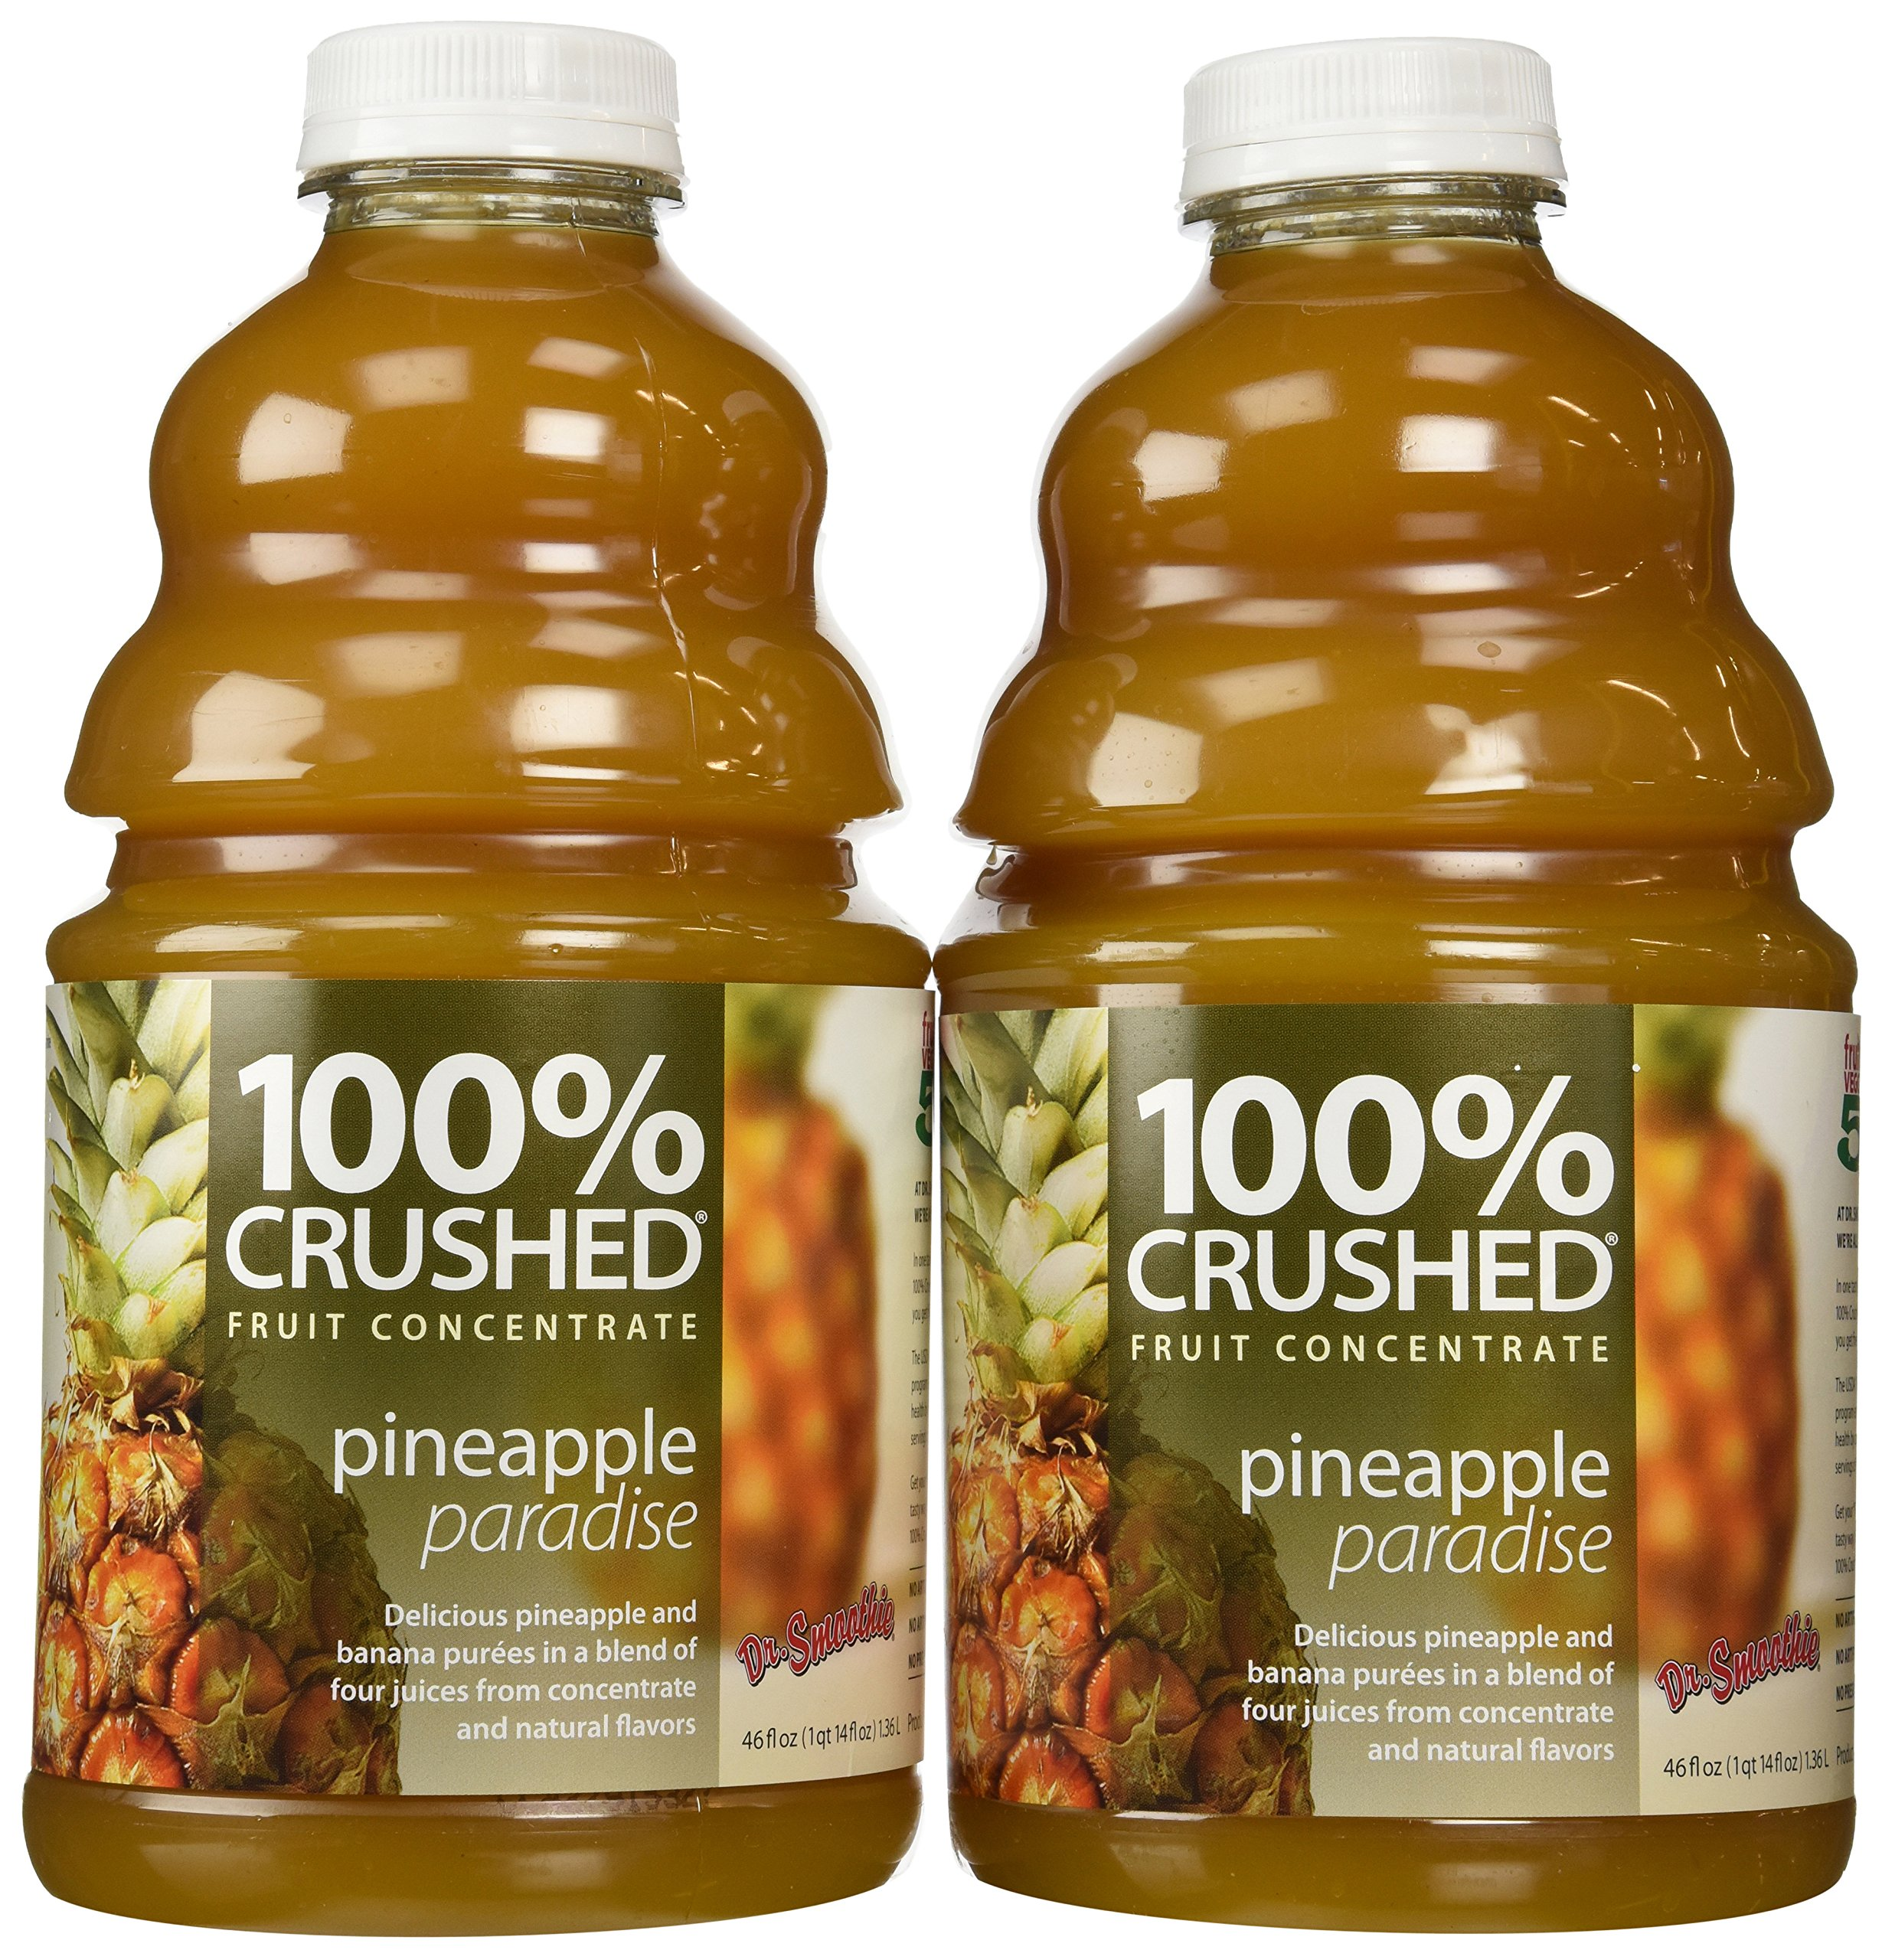 Amazon.com : Dr. Smoothie 100% Crushed Fruit Concentrate, Pineapple  Paradise, 46-Ounce Bottles (Pack of 2) : Juice Smoothie Drinks : Grocery &  Gourmet Food